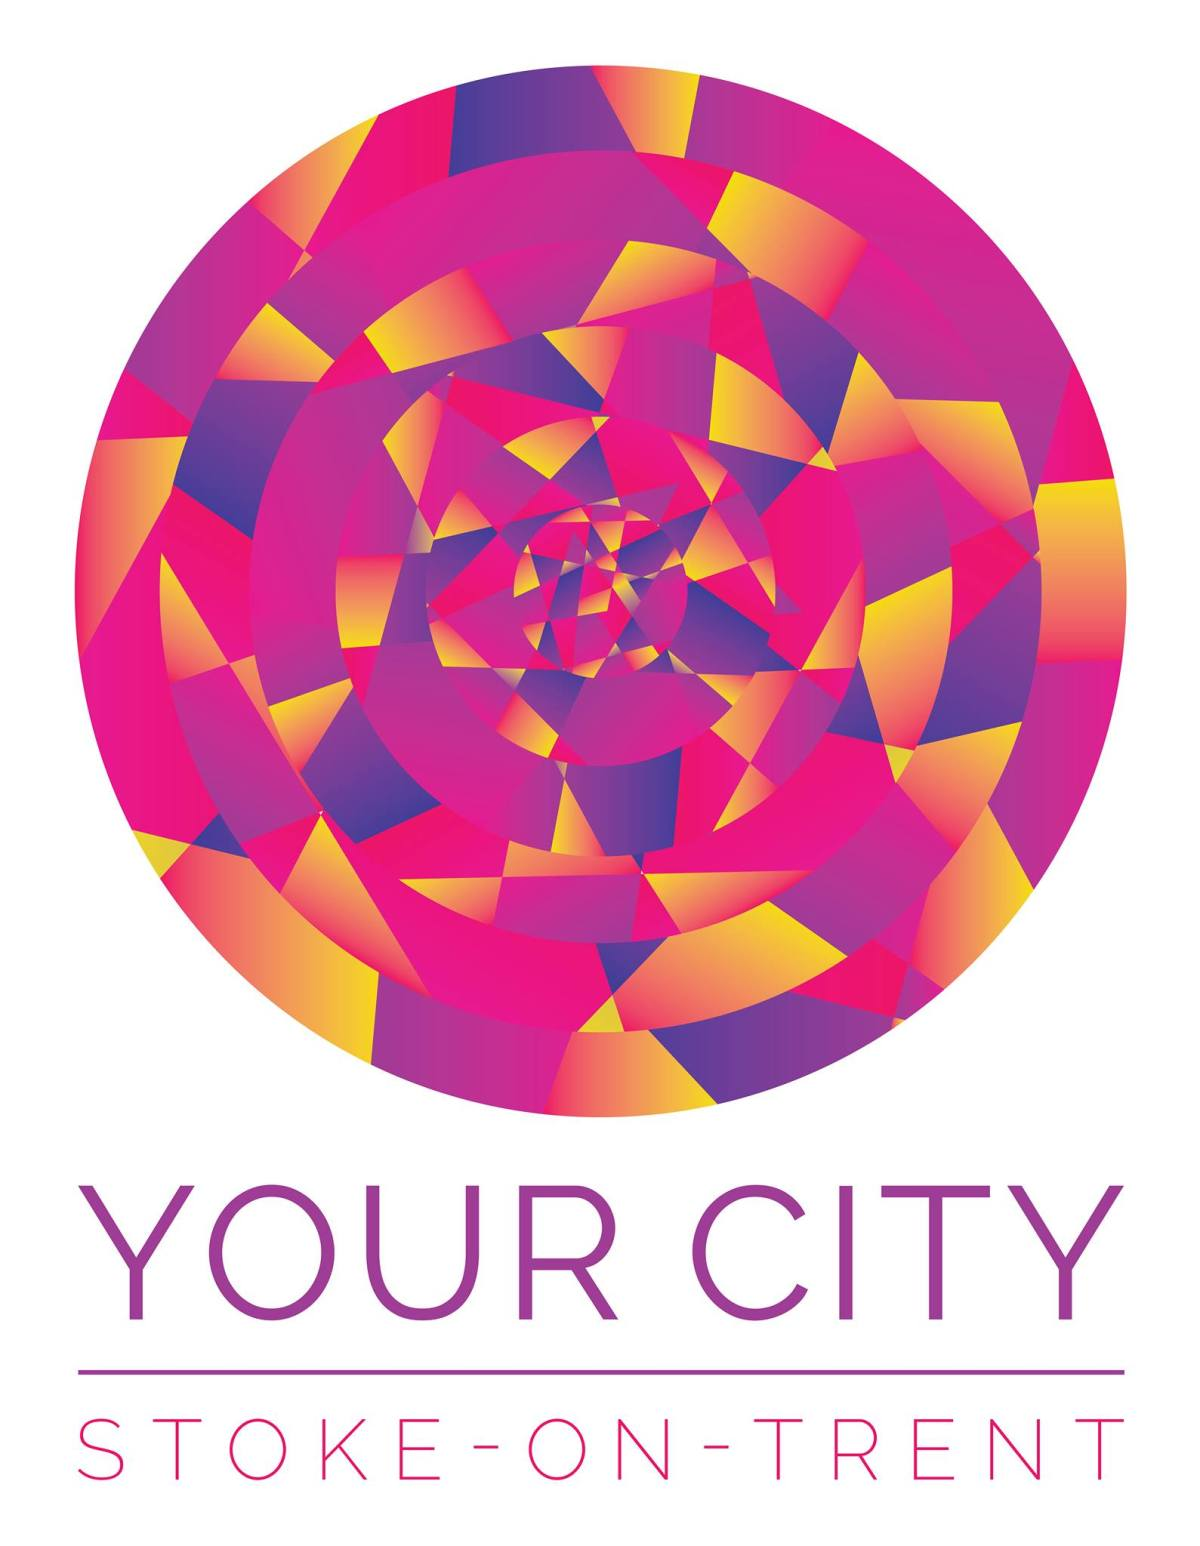 Your City Festival 2017